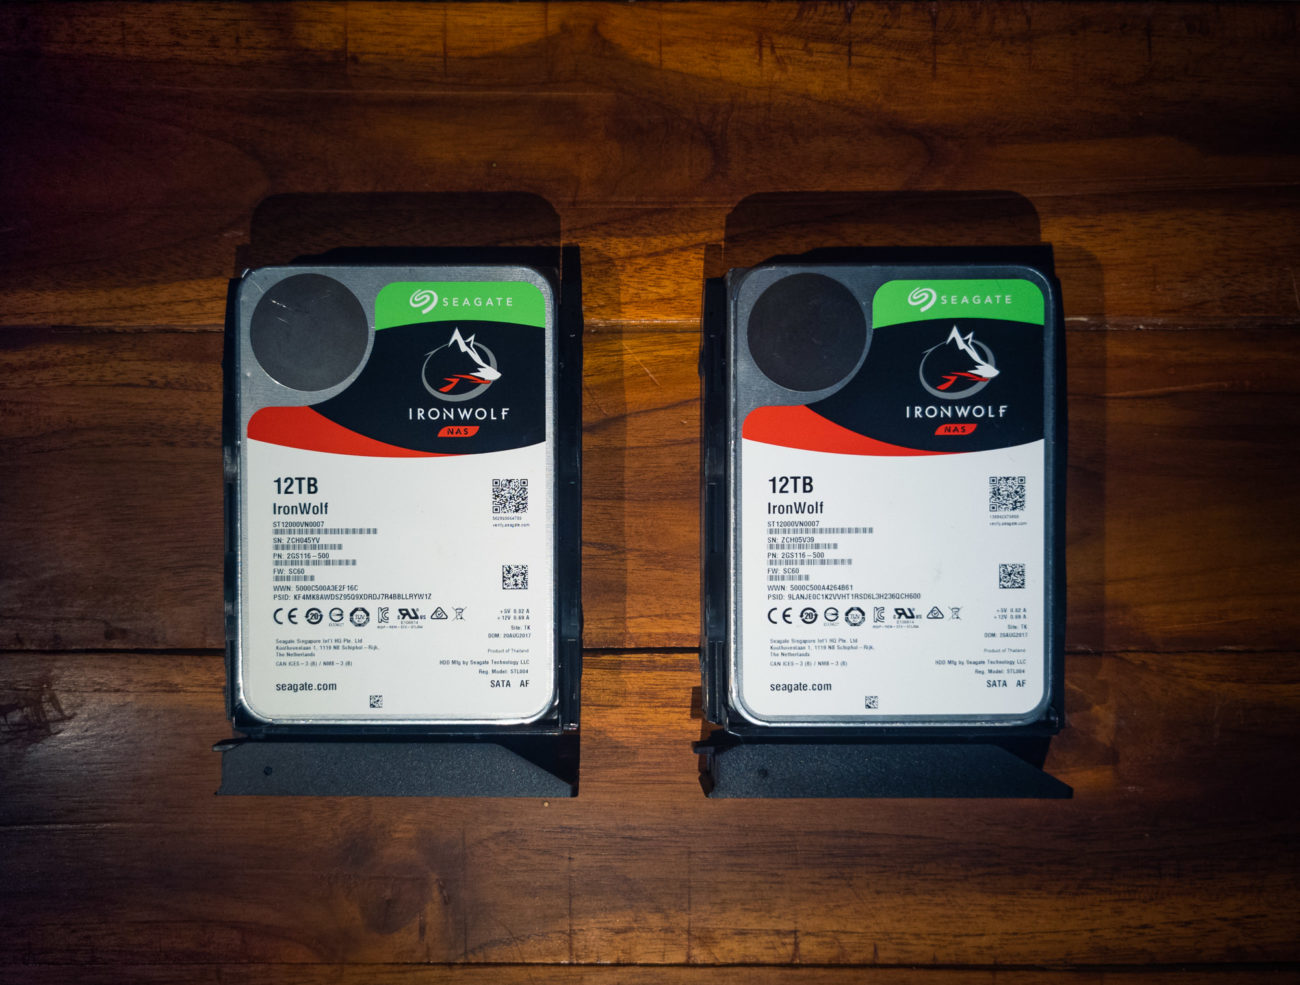 Synology NAS Seagate hard drives.